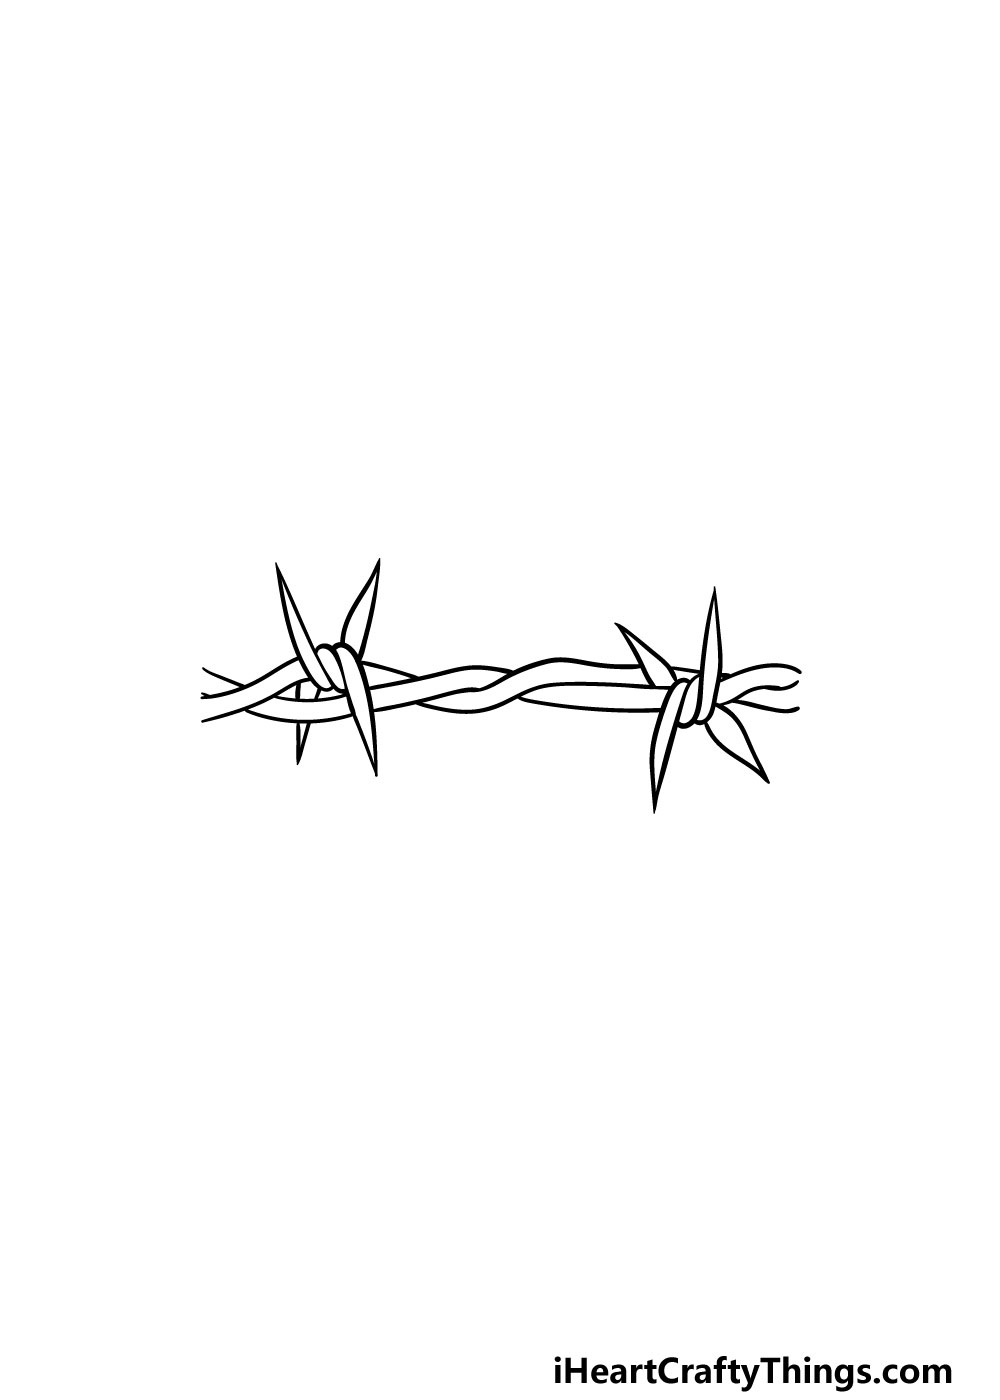 drawing barbed wire step 5